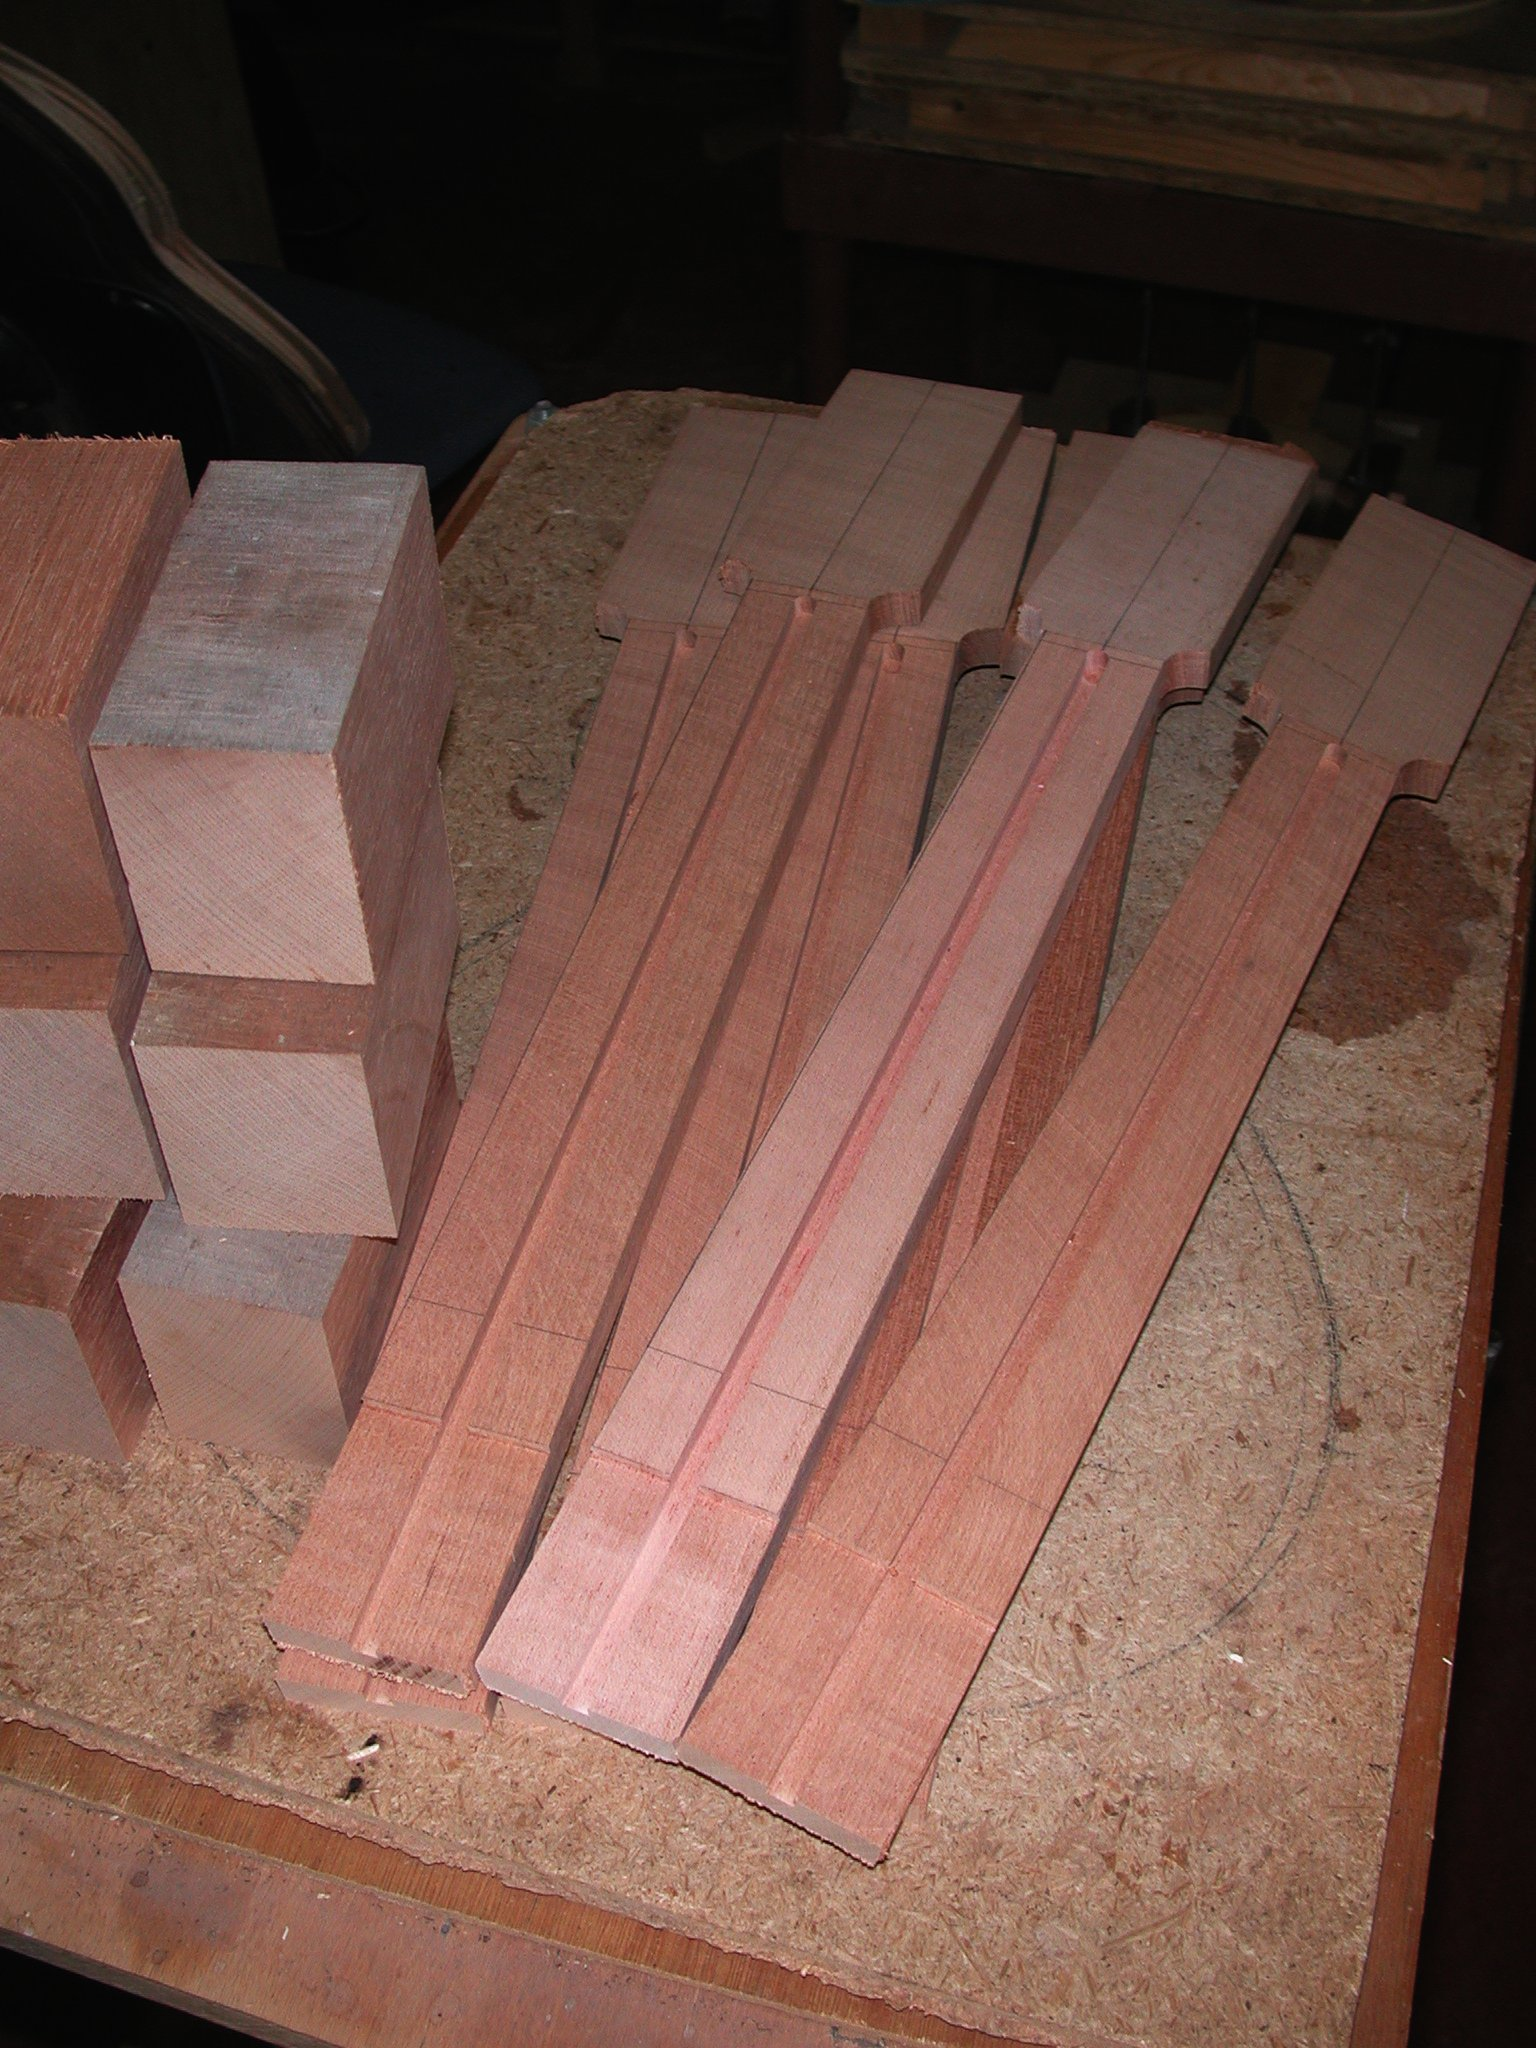 Neck: The neckwidth is fixed, the ledge for the top is milled